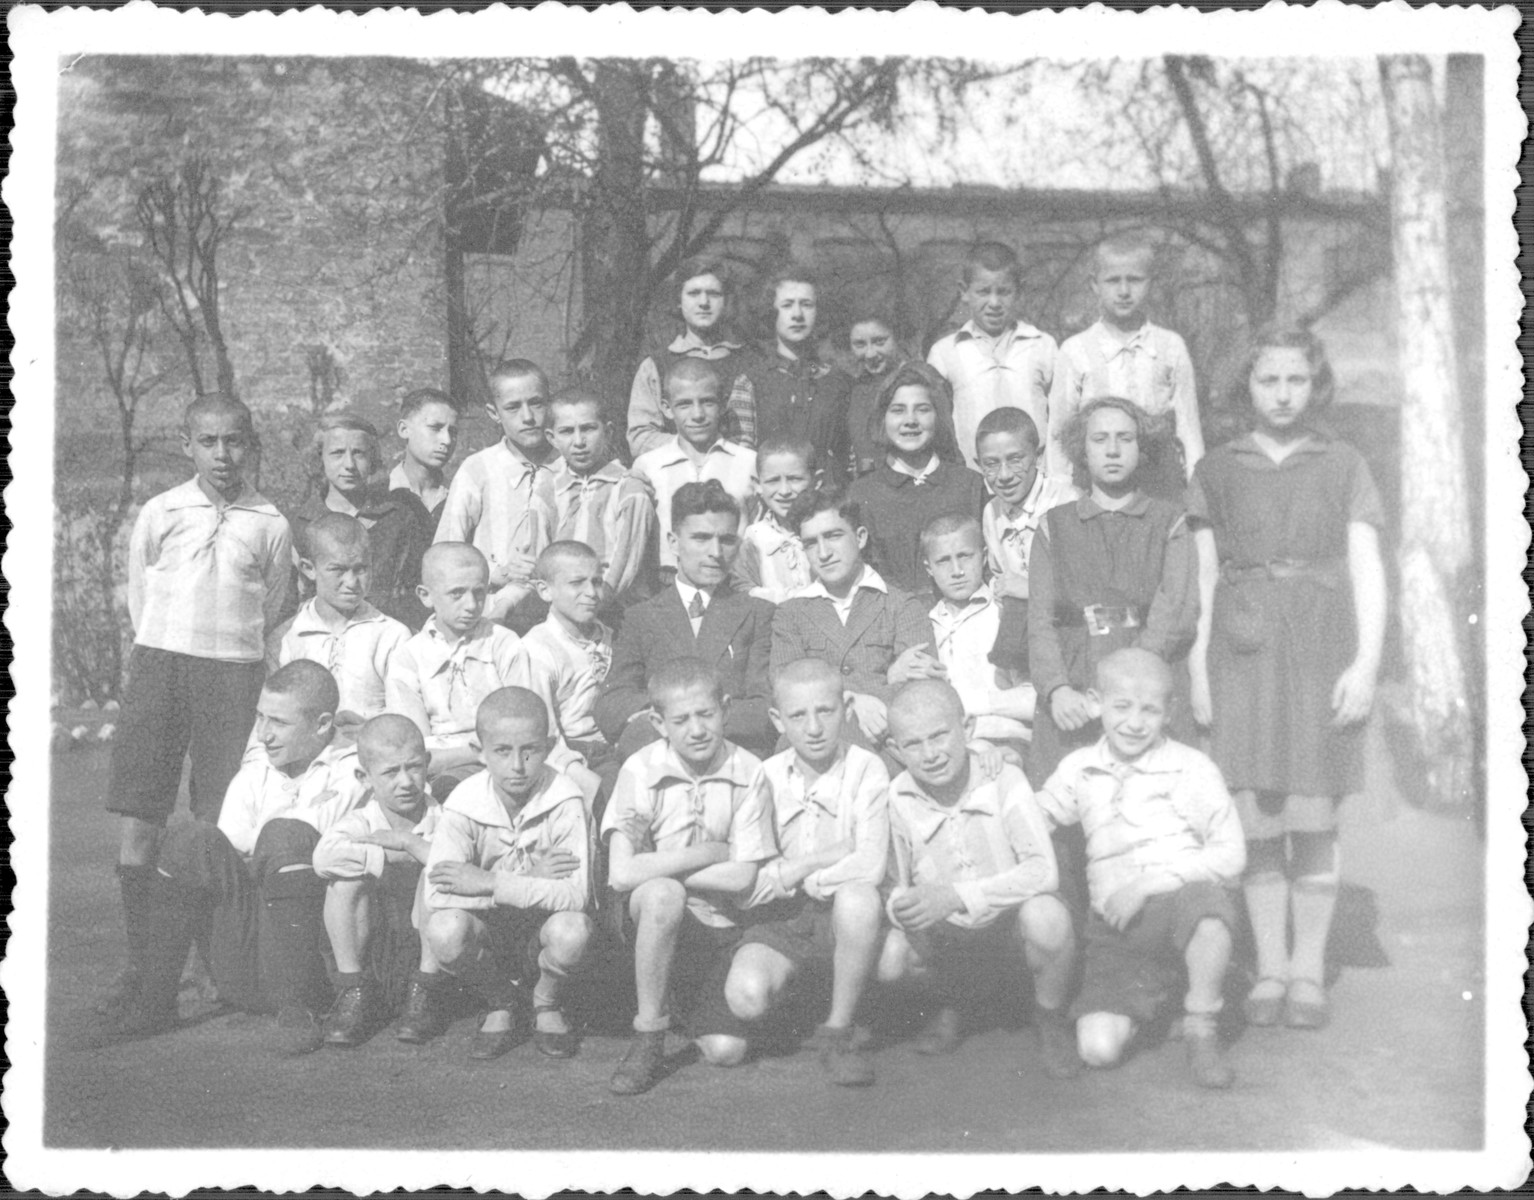 Group portrait of orphans on the grounds of the Korczak Oprhanage.  Felix Gyp is in the middle right, Misha Wroblewski is on the left and Shlomo Nadel is standing on the far left.